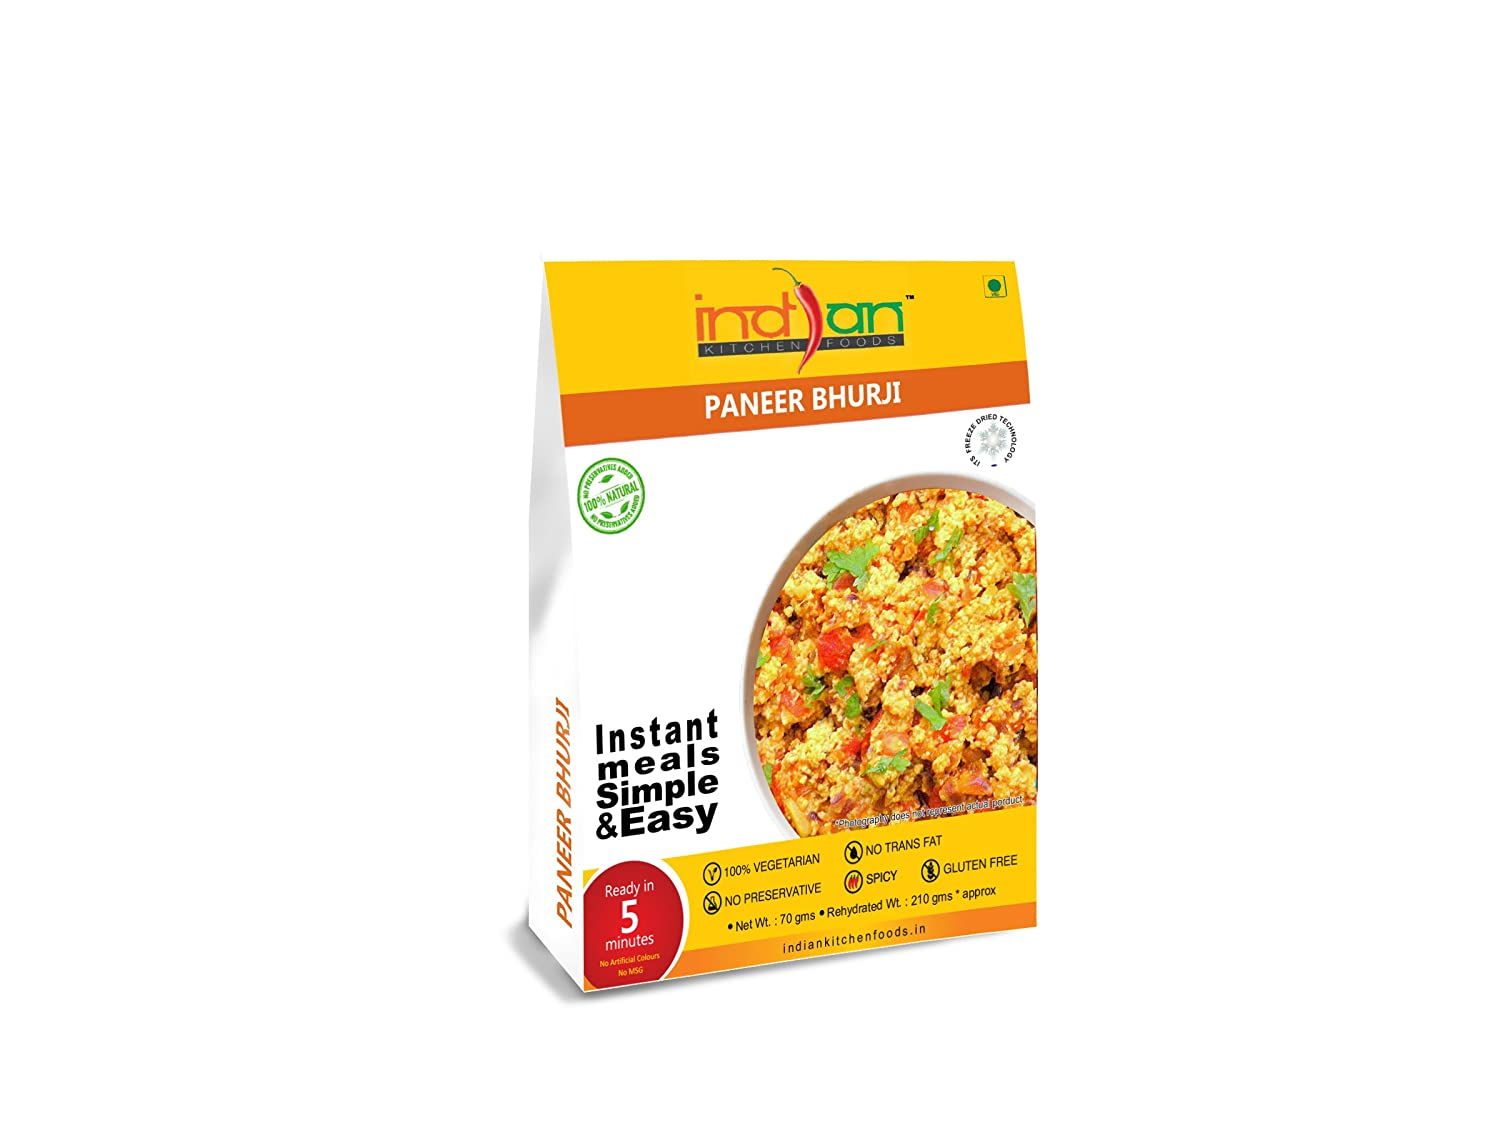 Astonishing Indian Kitchen Foods Mashed Cottage Cheese And Vegetable Paneer Bhurji Freeze Dried Gluten Free Gourmet Indian Entree Ready To Eat Instant Download Free Architecture Designs Embacsunscenecom